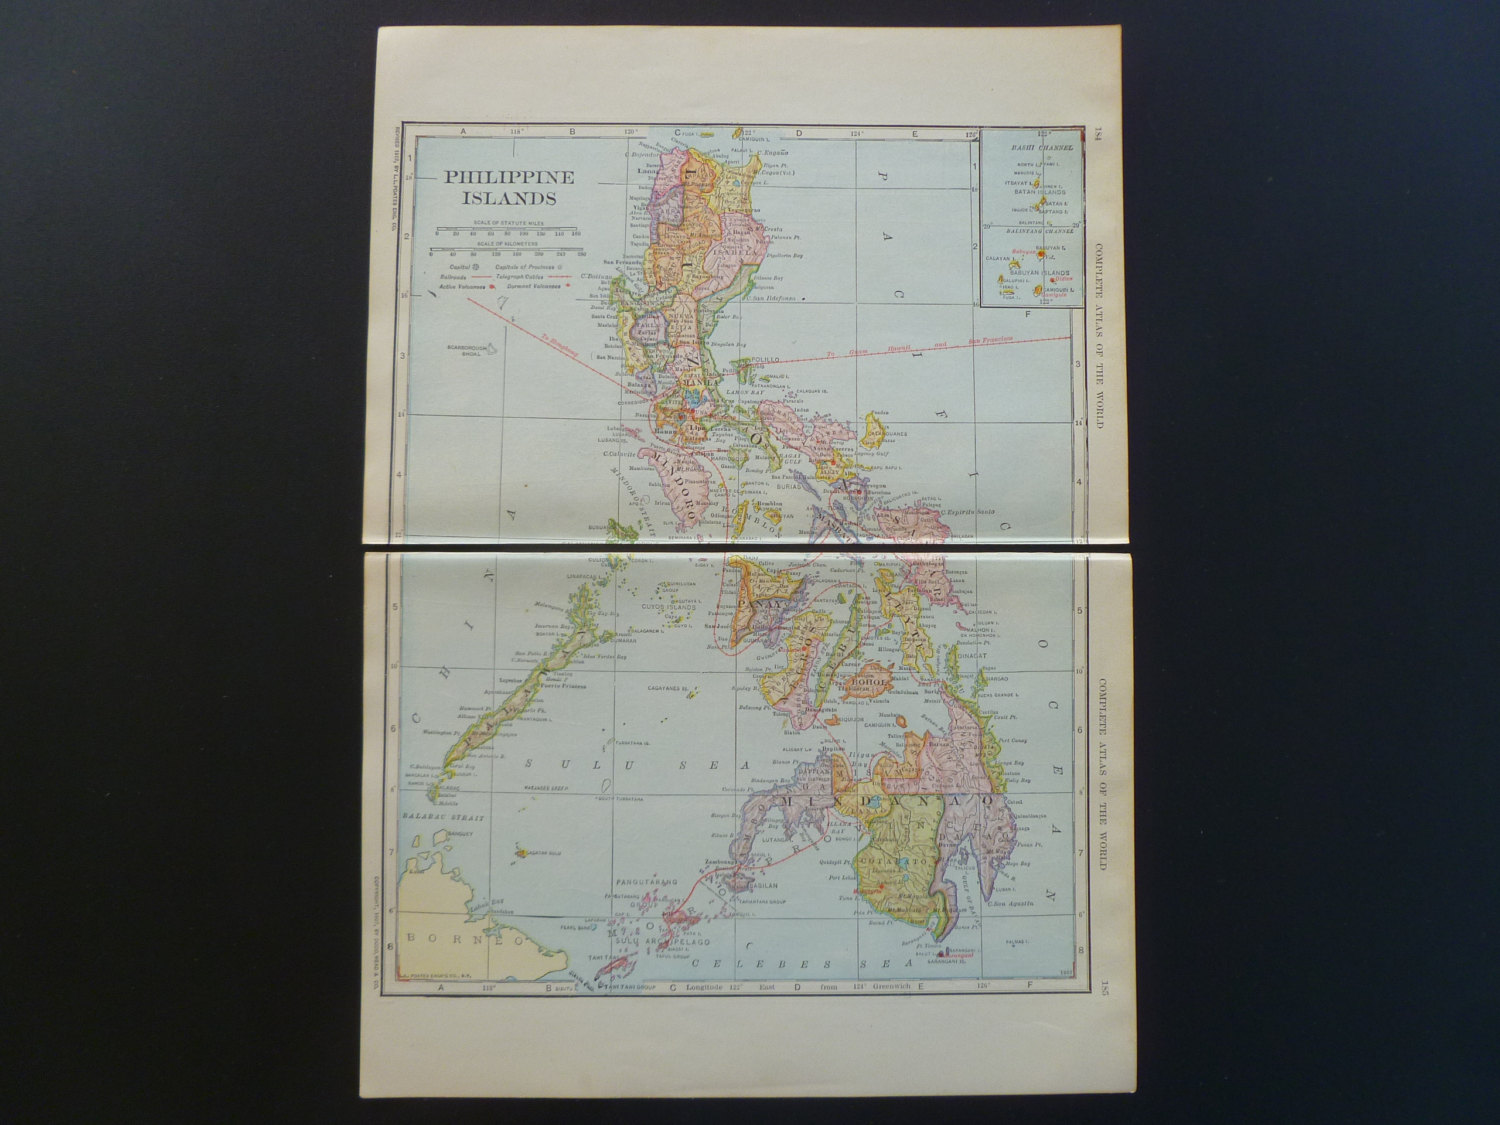 Antique map philippine islands 1912 old print about the il fullxfull577295225 68yg original publicscrutiny Images